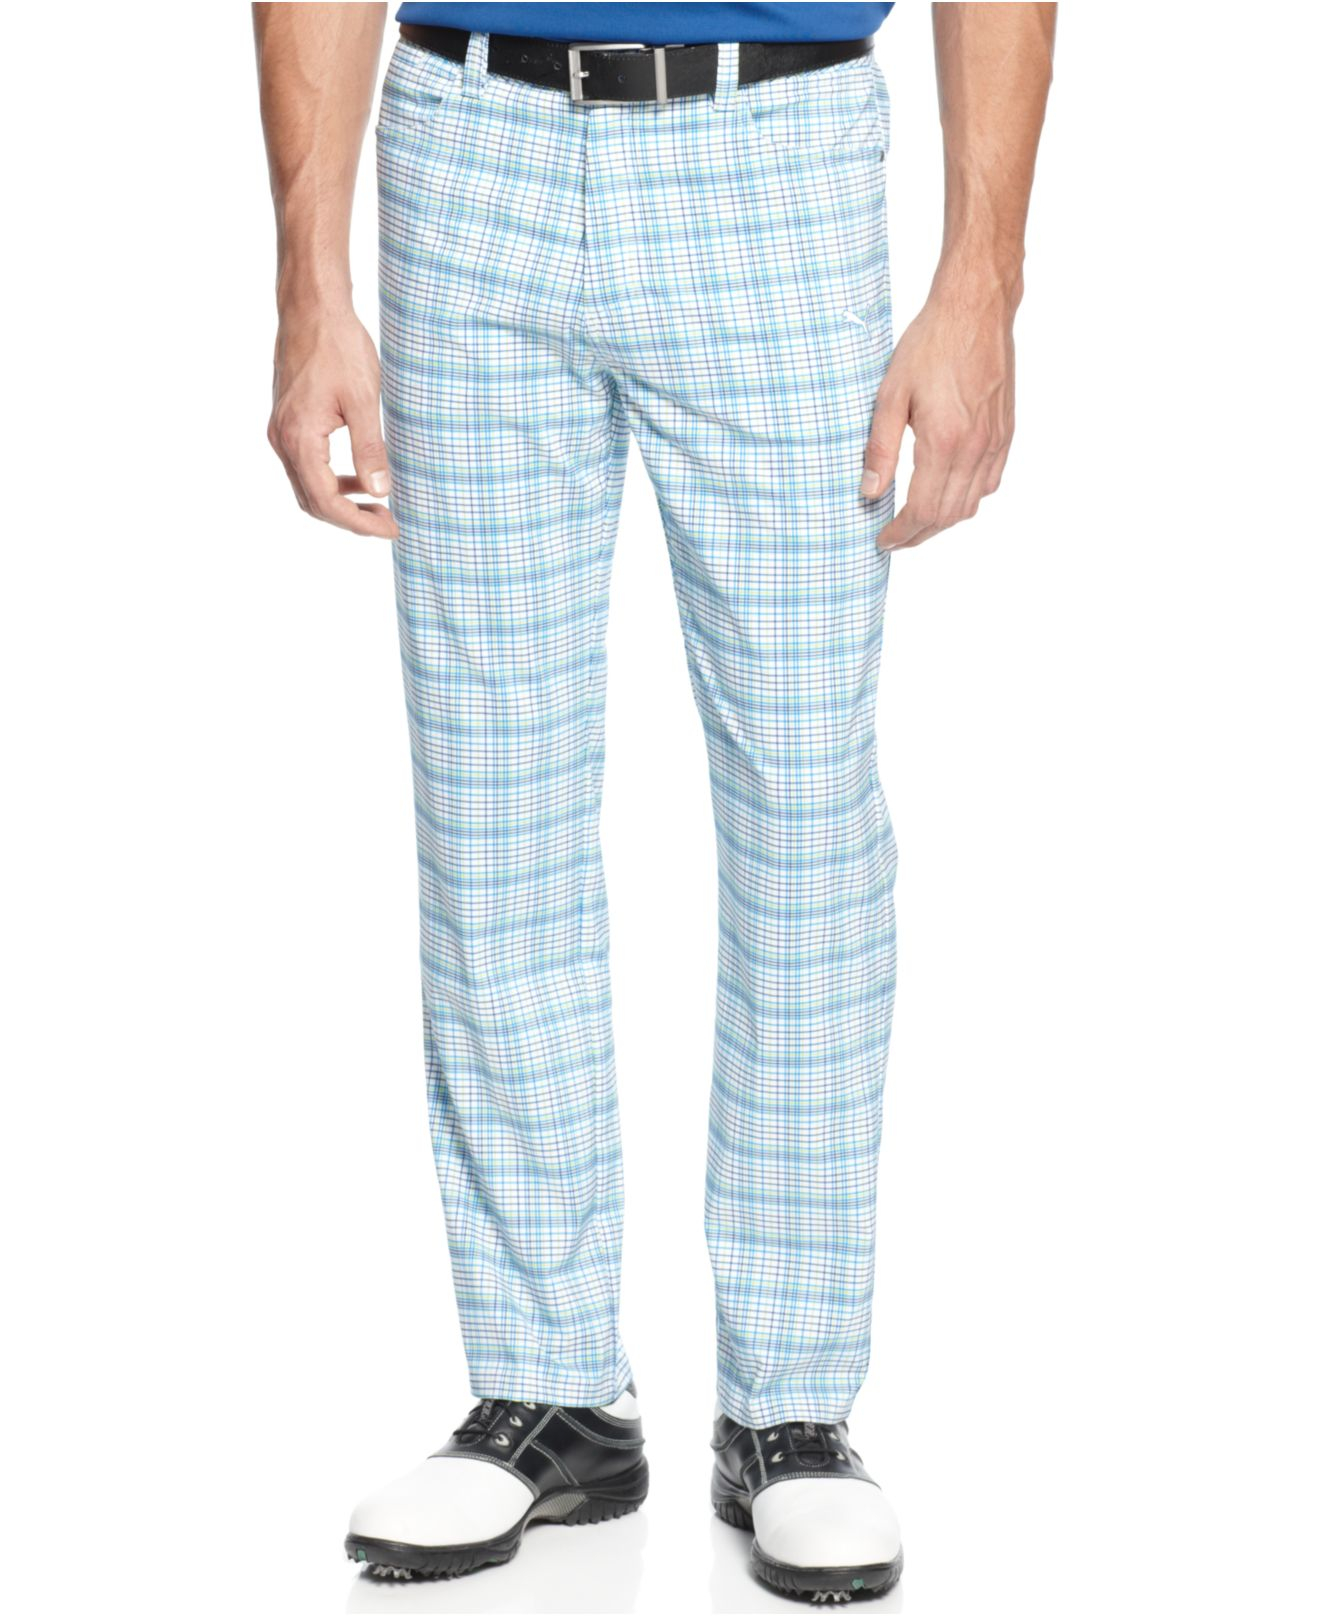 728b7c06ce23 Lyst - PUMA Drycell Tech Plaid Performance Golf Pants in White for Men